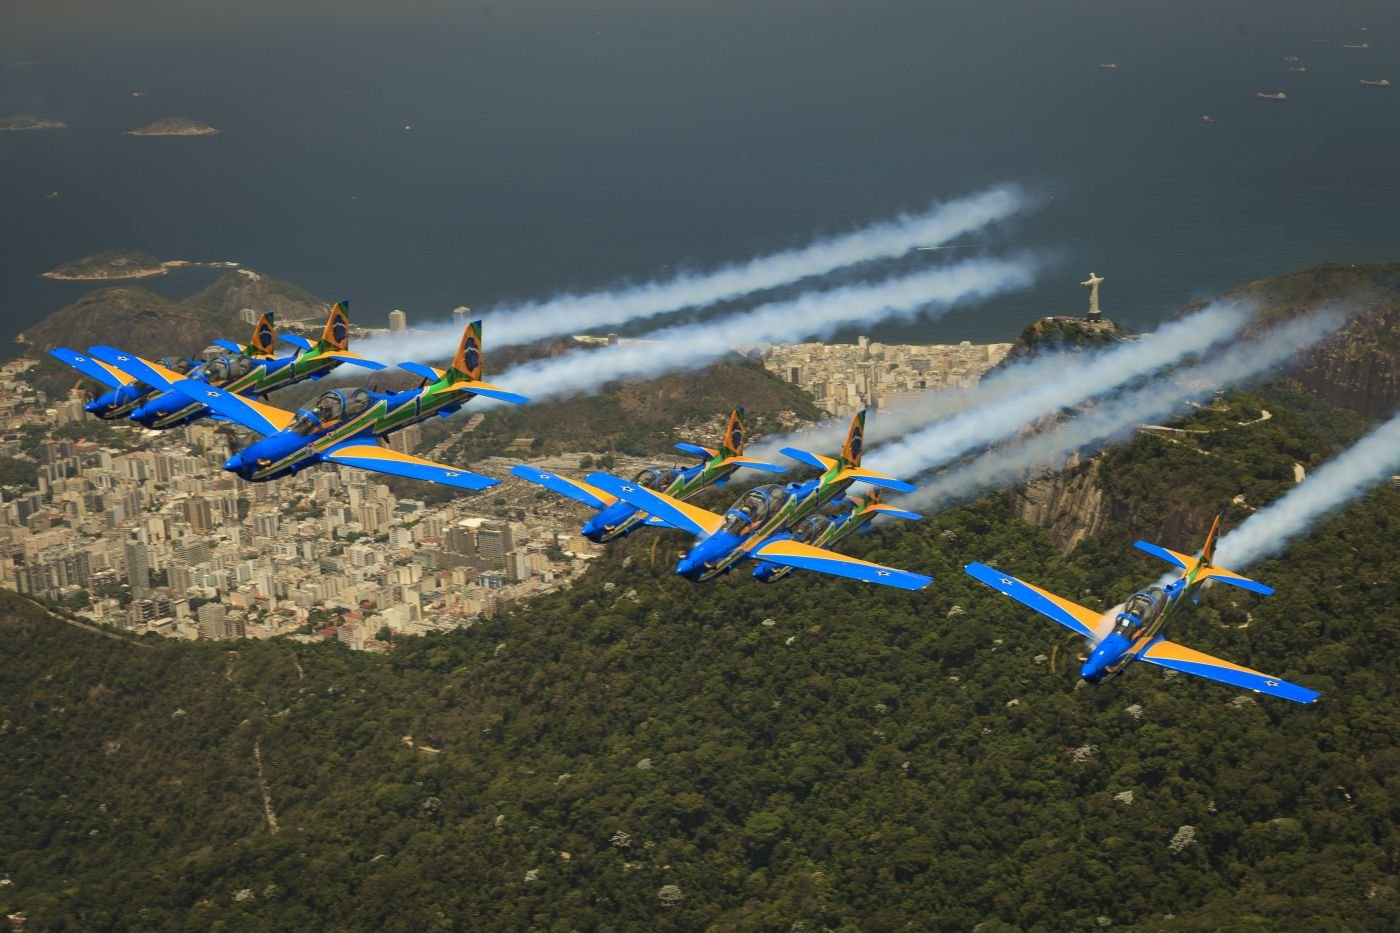 The Brazilian Air Force's Smoke Squadron Resumes Enthralling Crowds